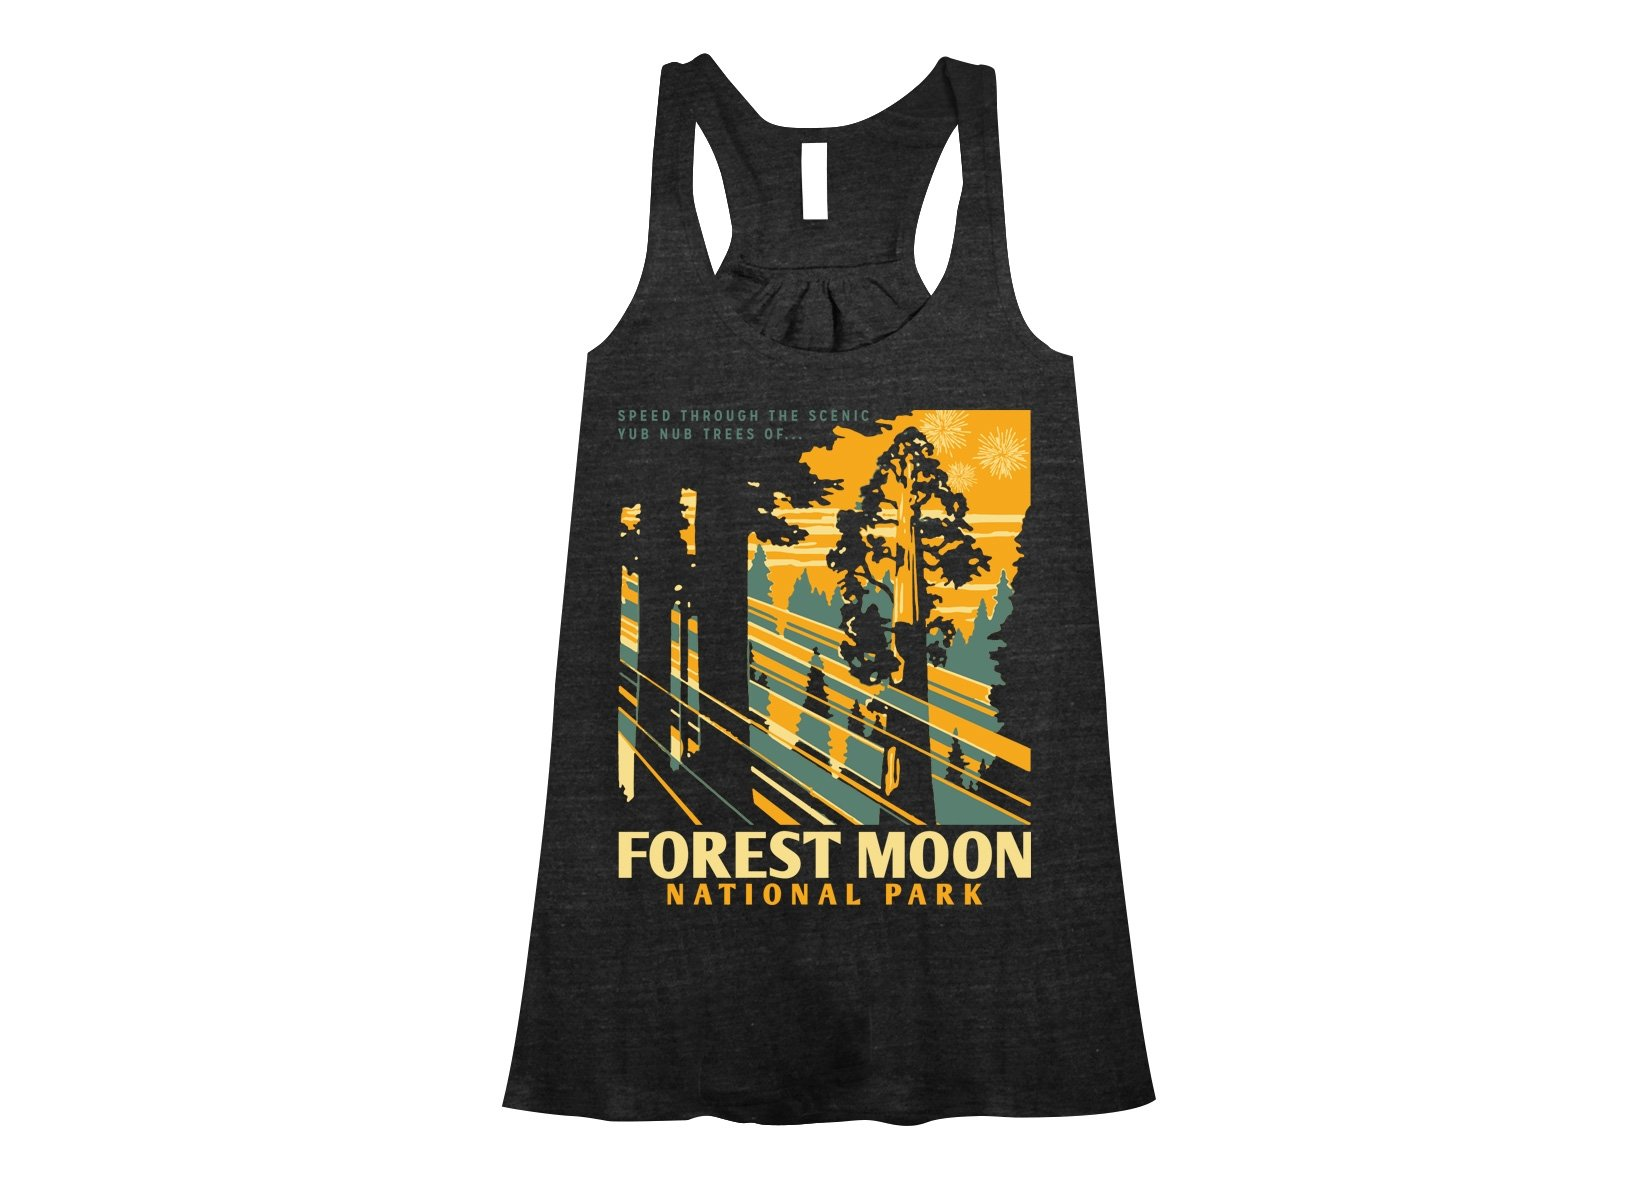 Forest Moon National Park on Womens Tanks T-Shirt